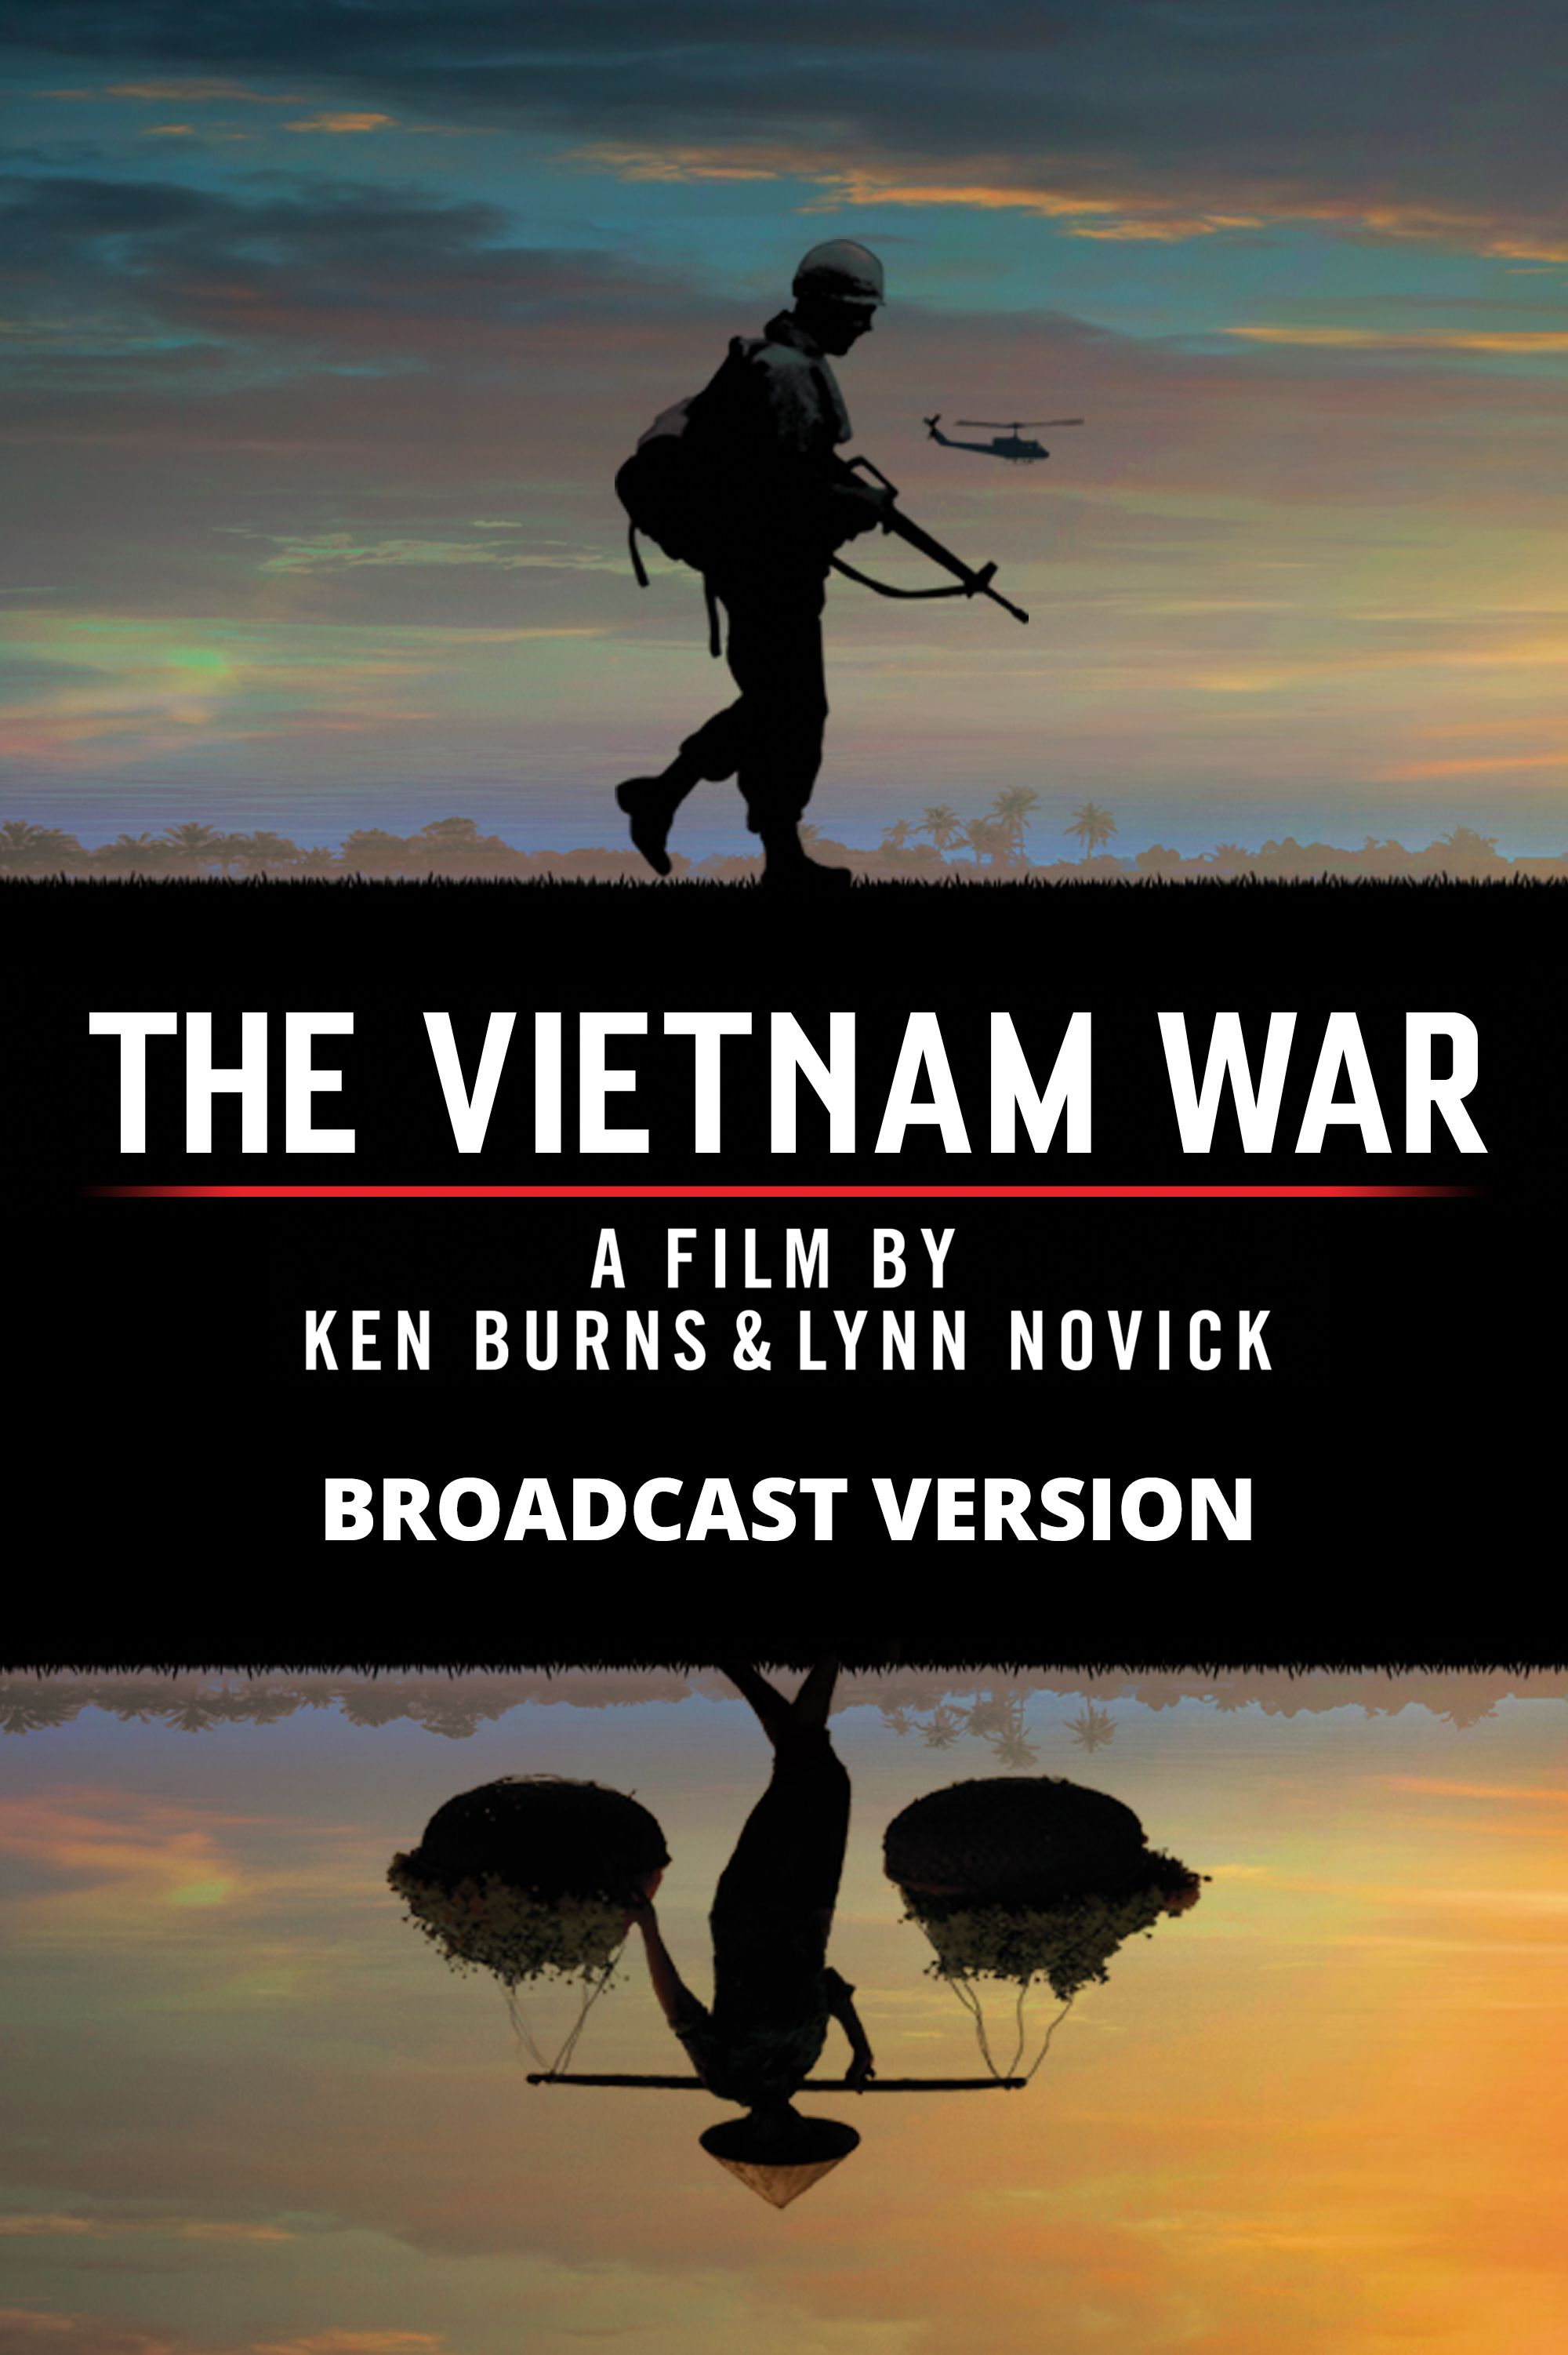 Vietnam War Correspondent Joe Galloway and Support for Women Veterans with TBI